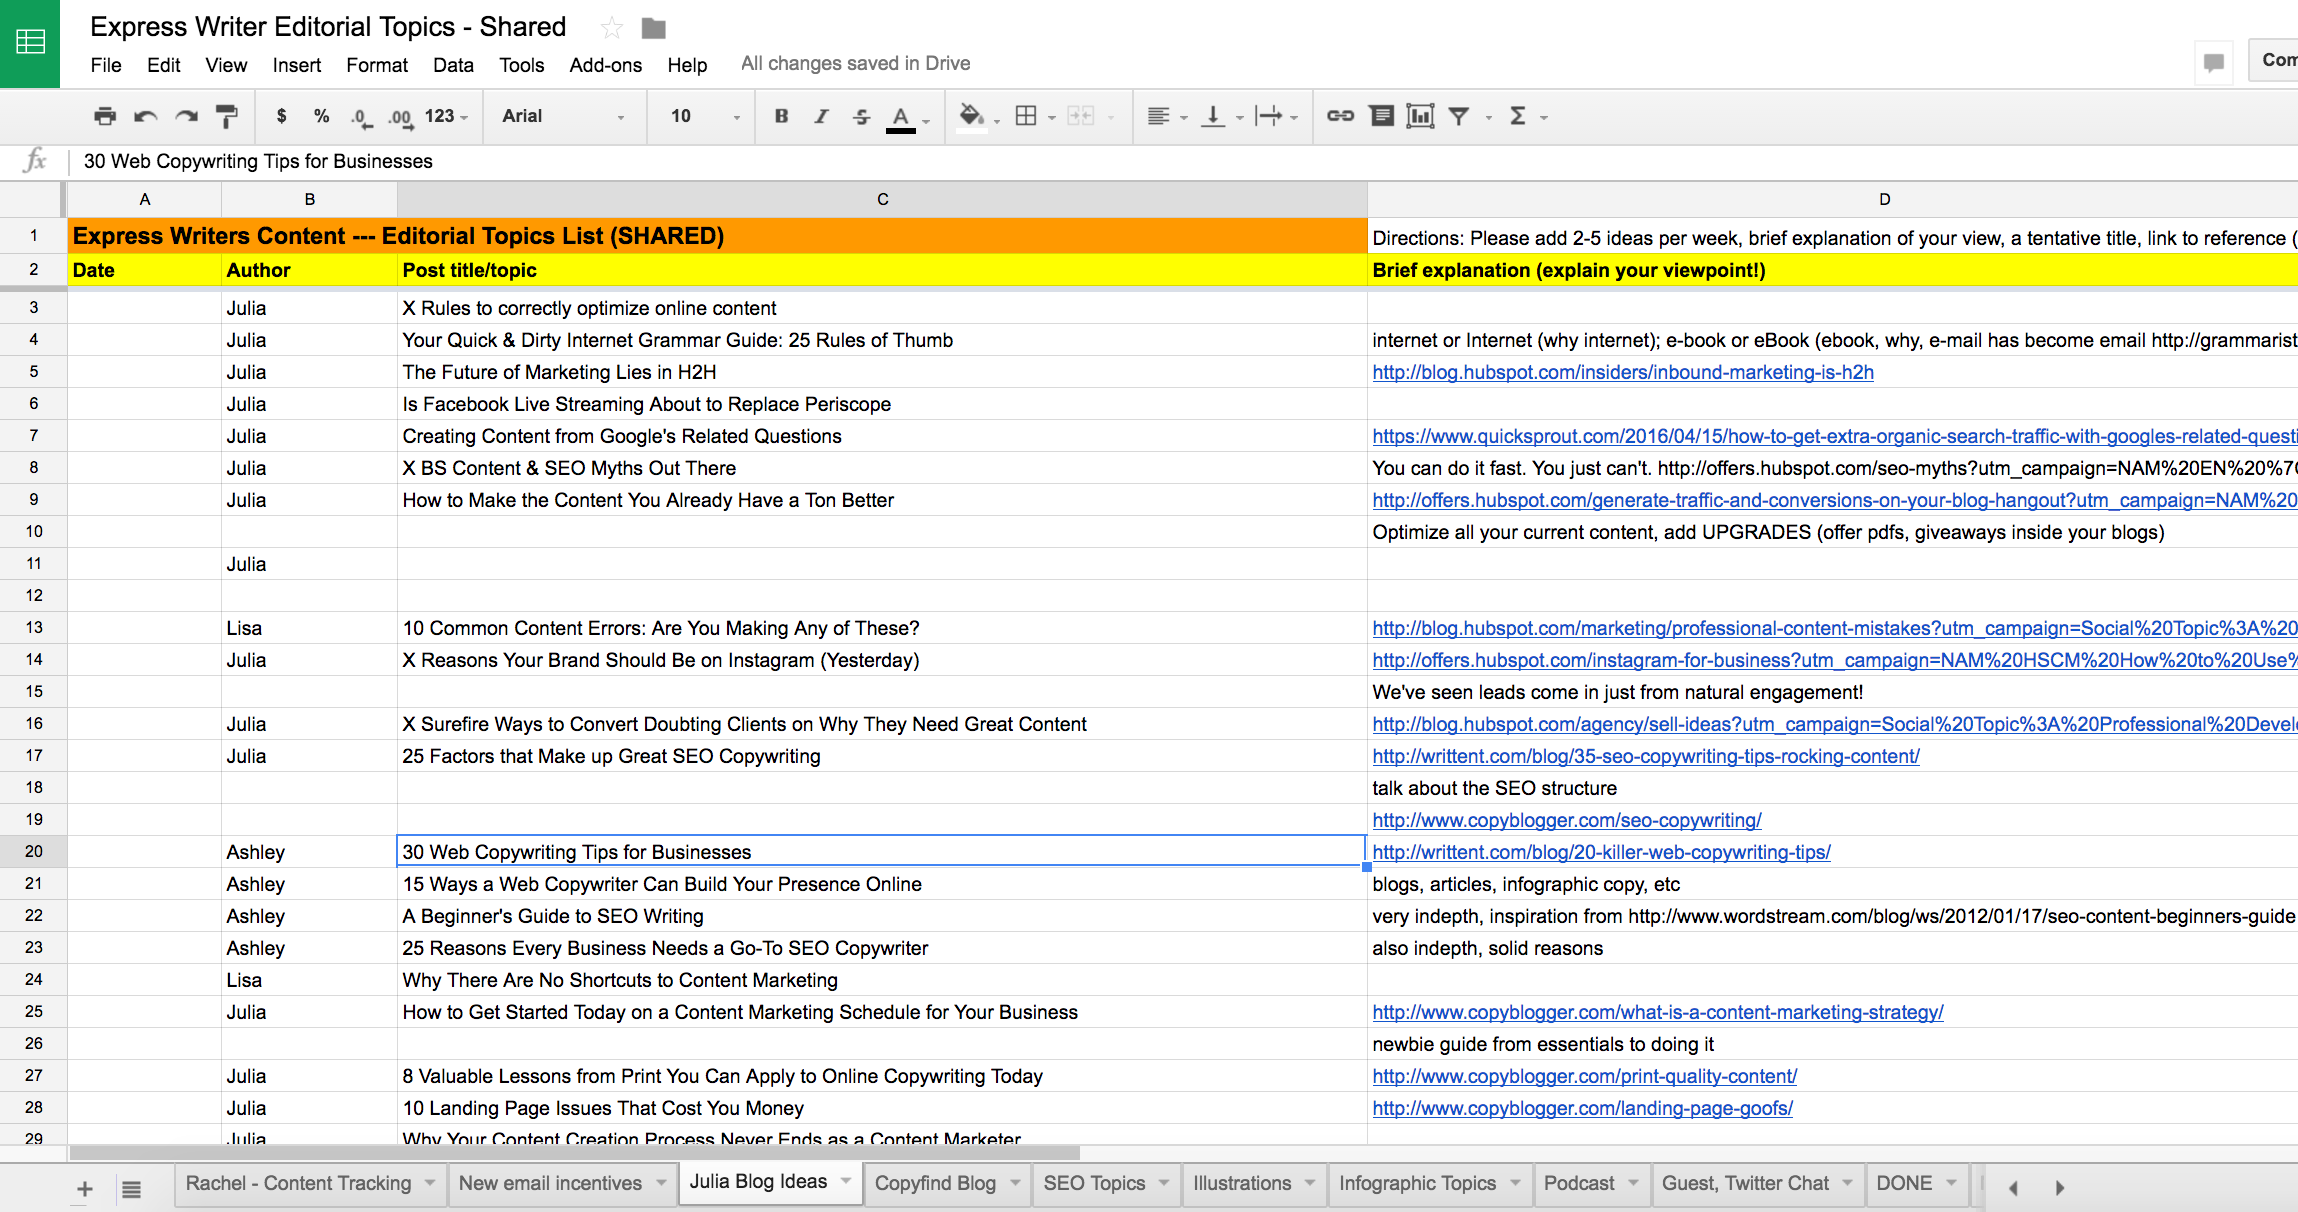 Google Docs Sheet example - screenshot